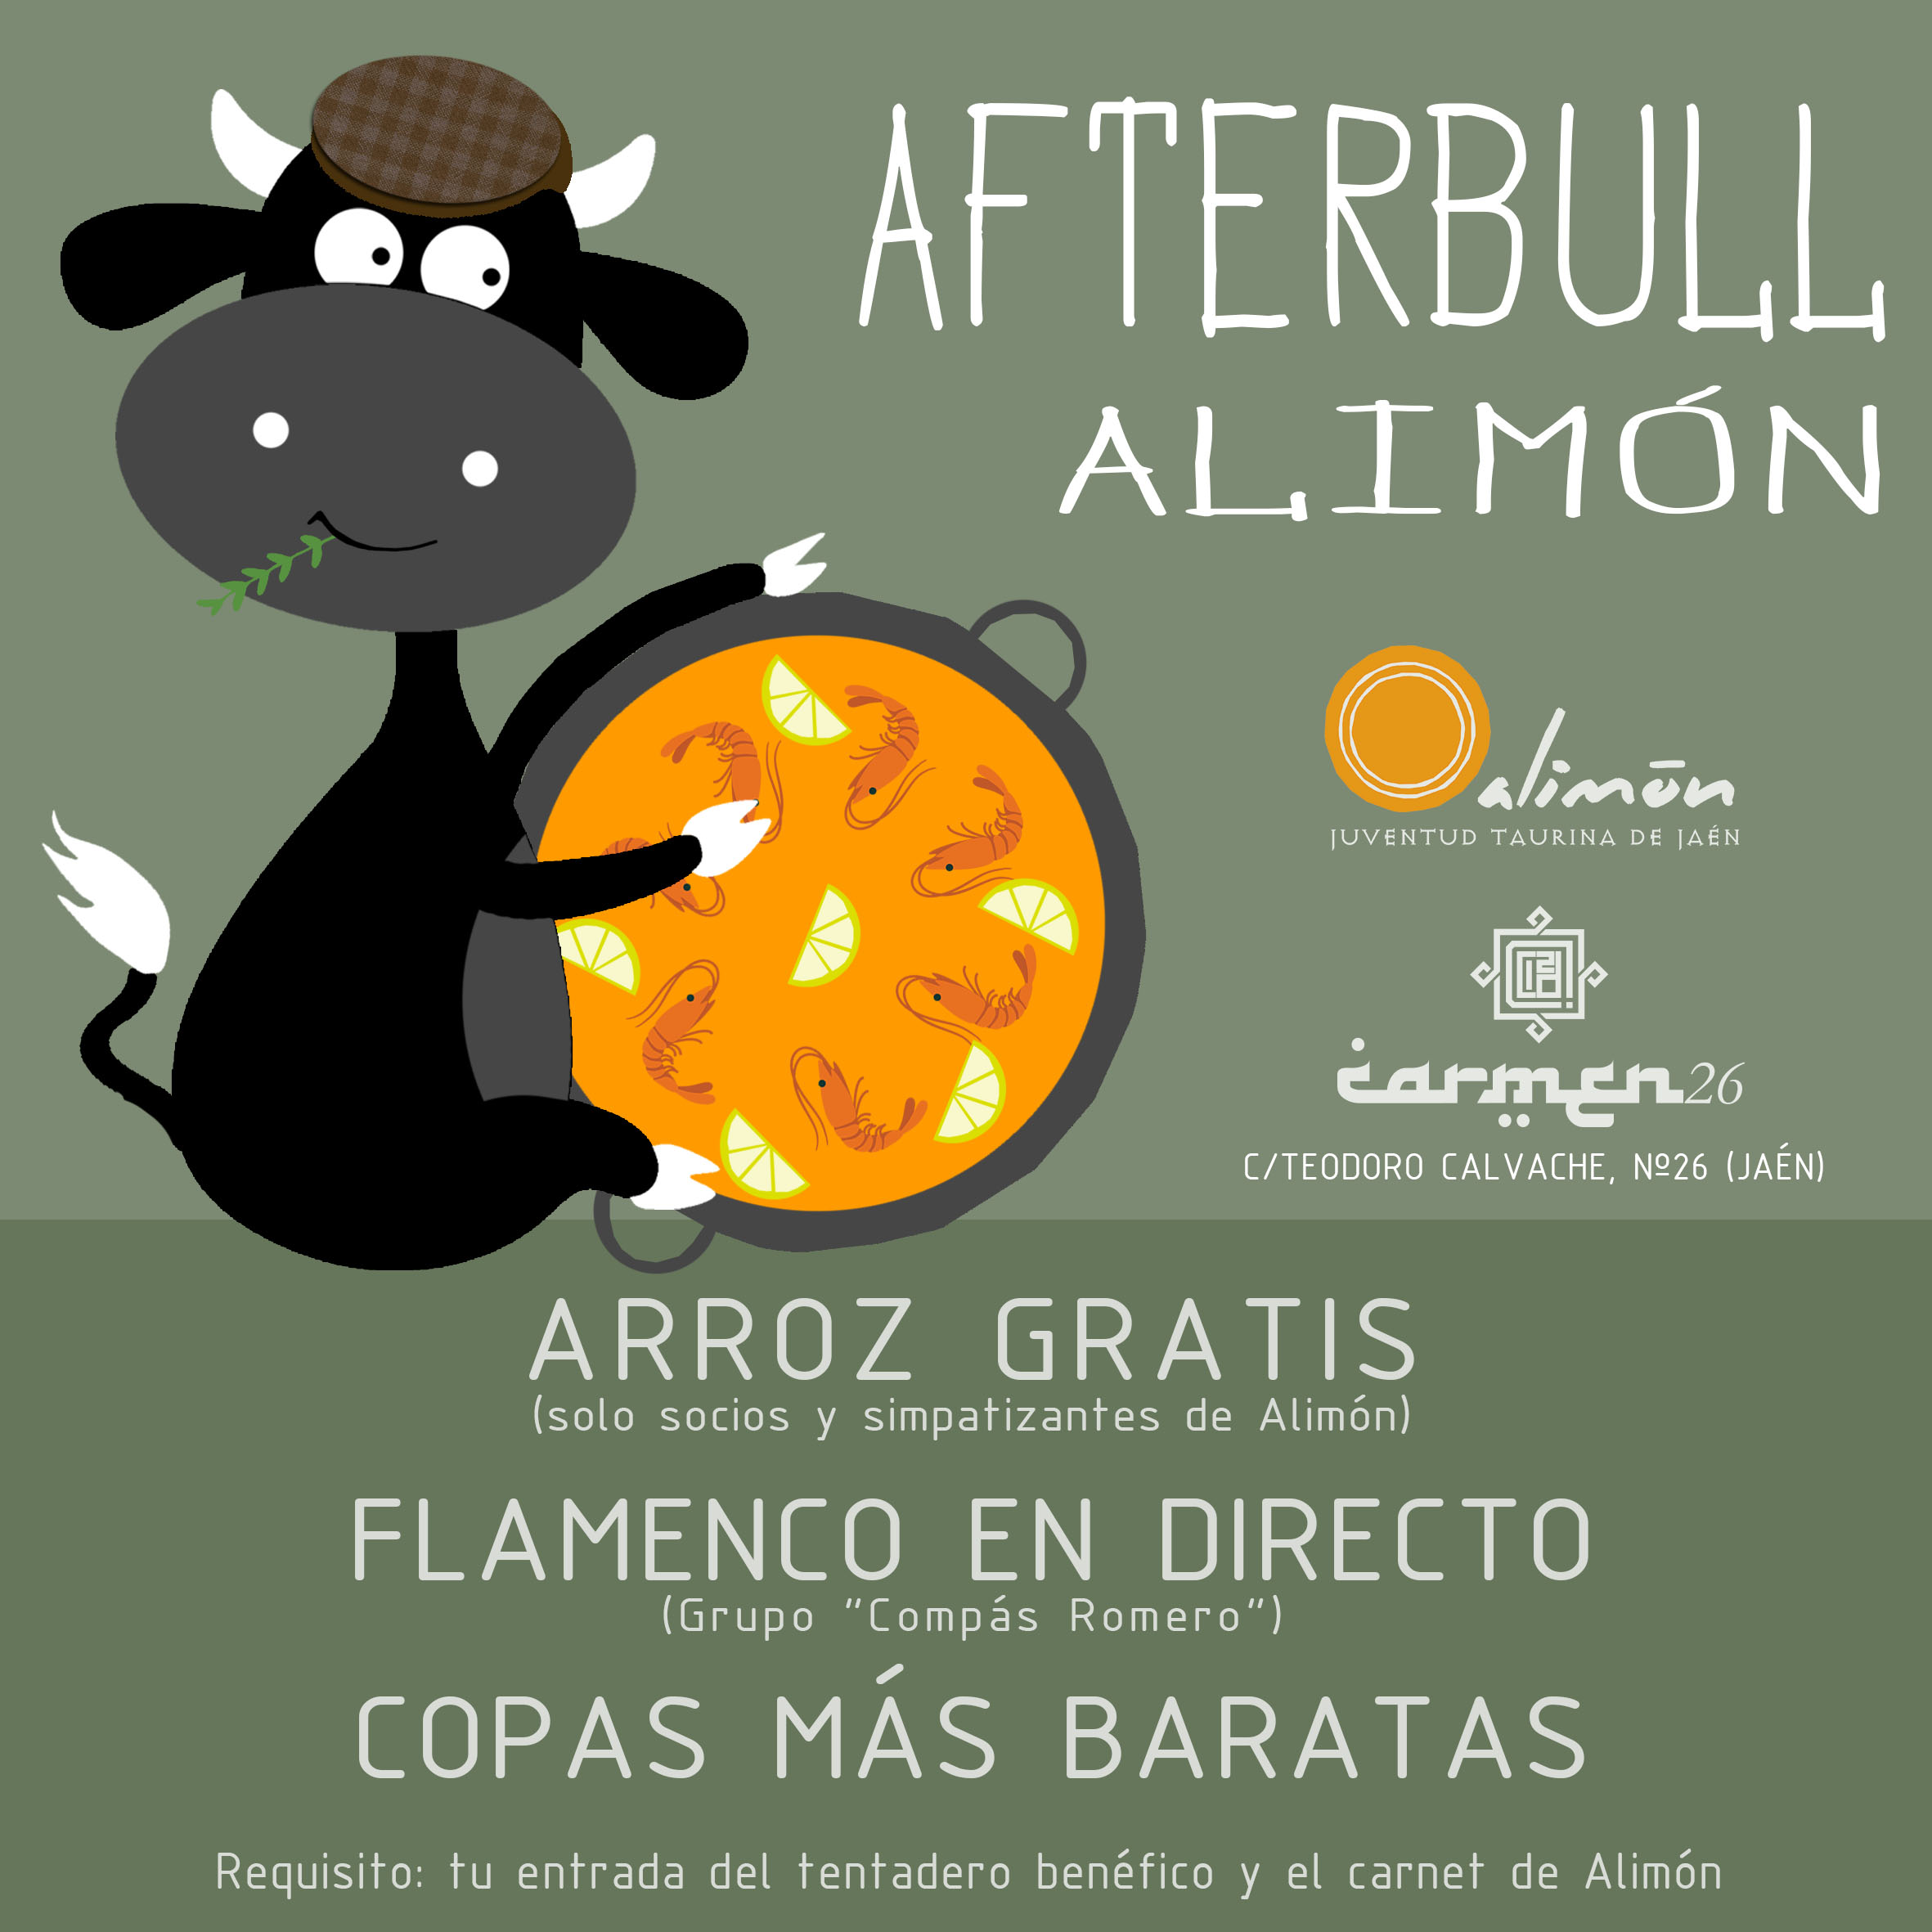 000a100 cartel afterbull 2019 02 10